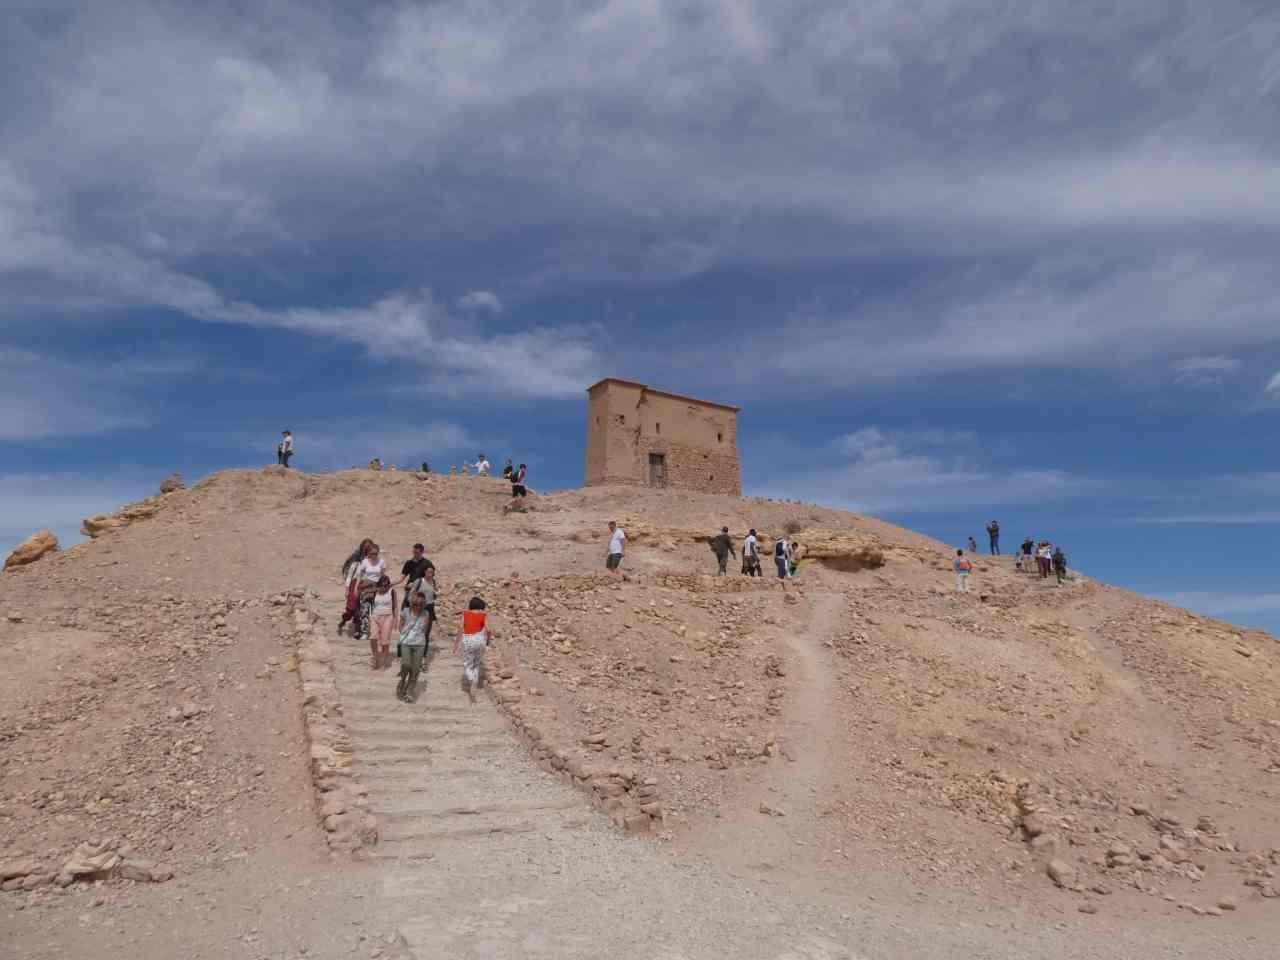 Top of the hill Ait Benhaddou is built on